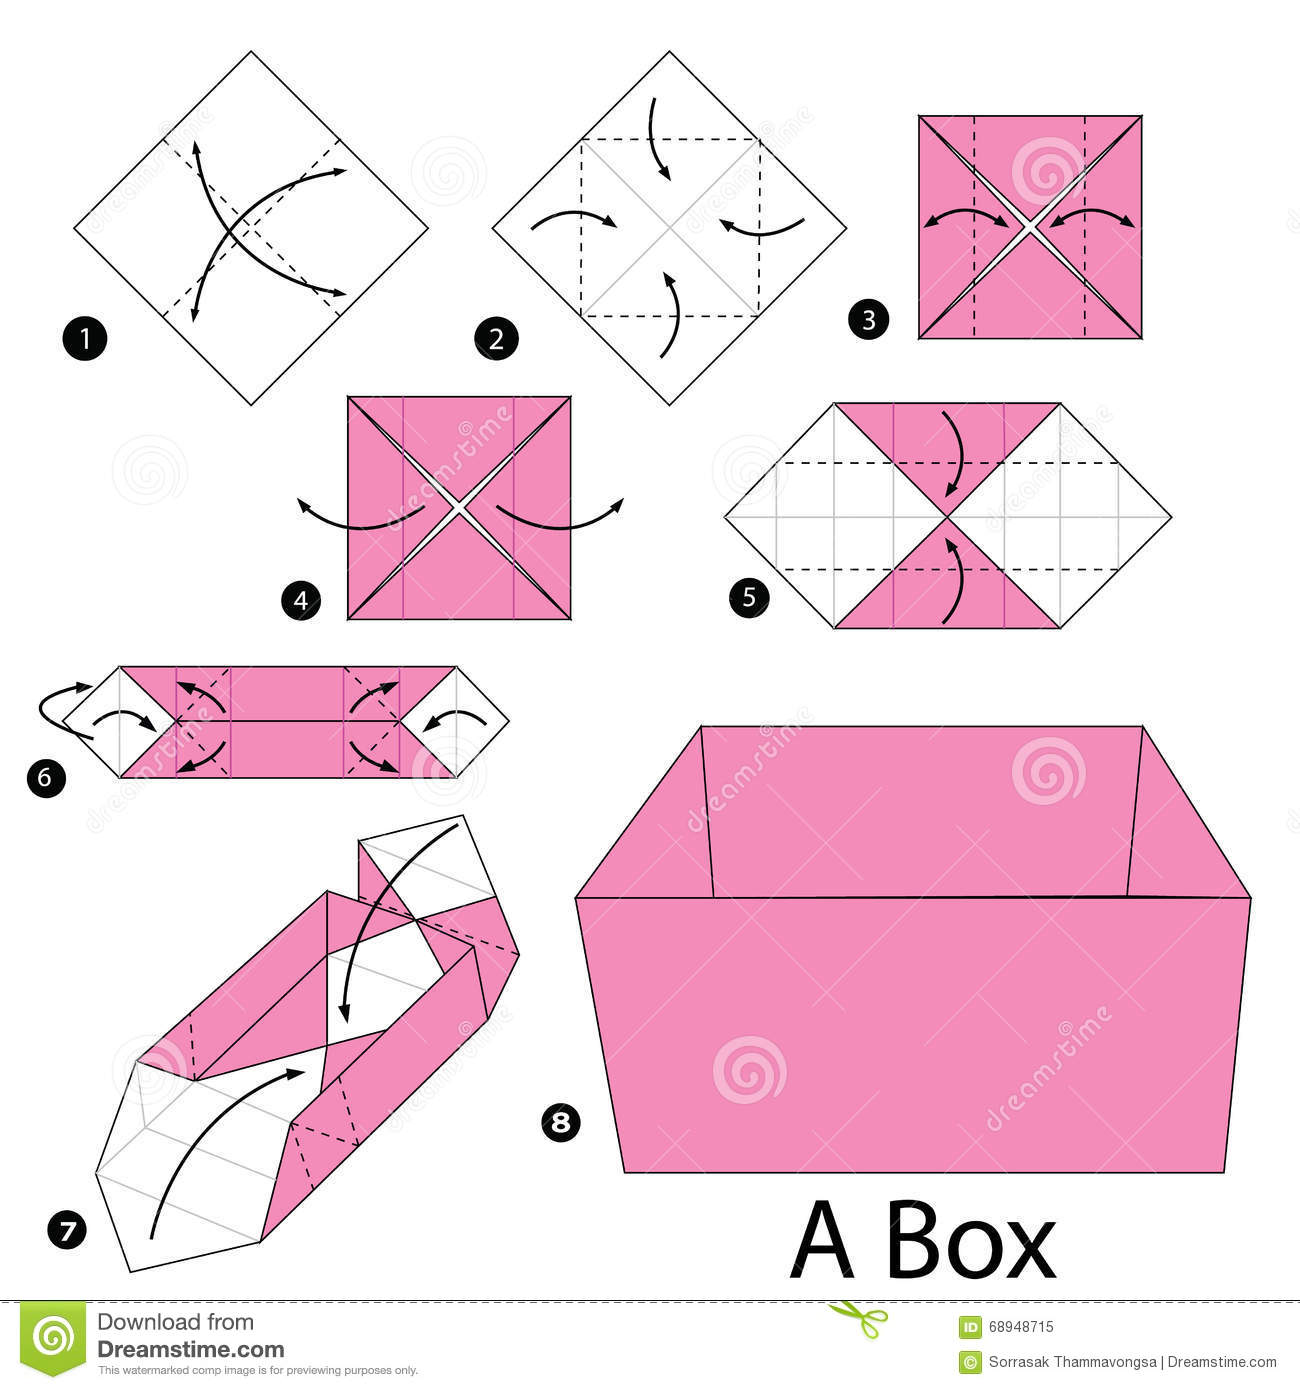 Origami instructions step by step